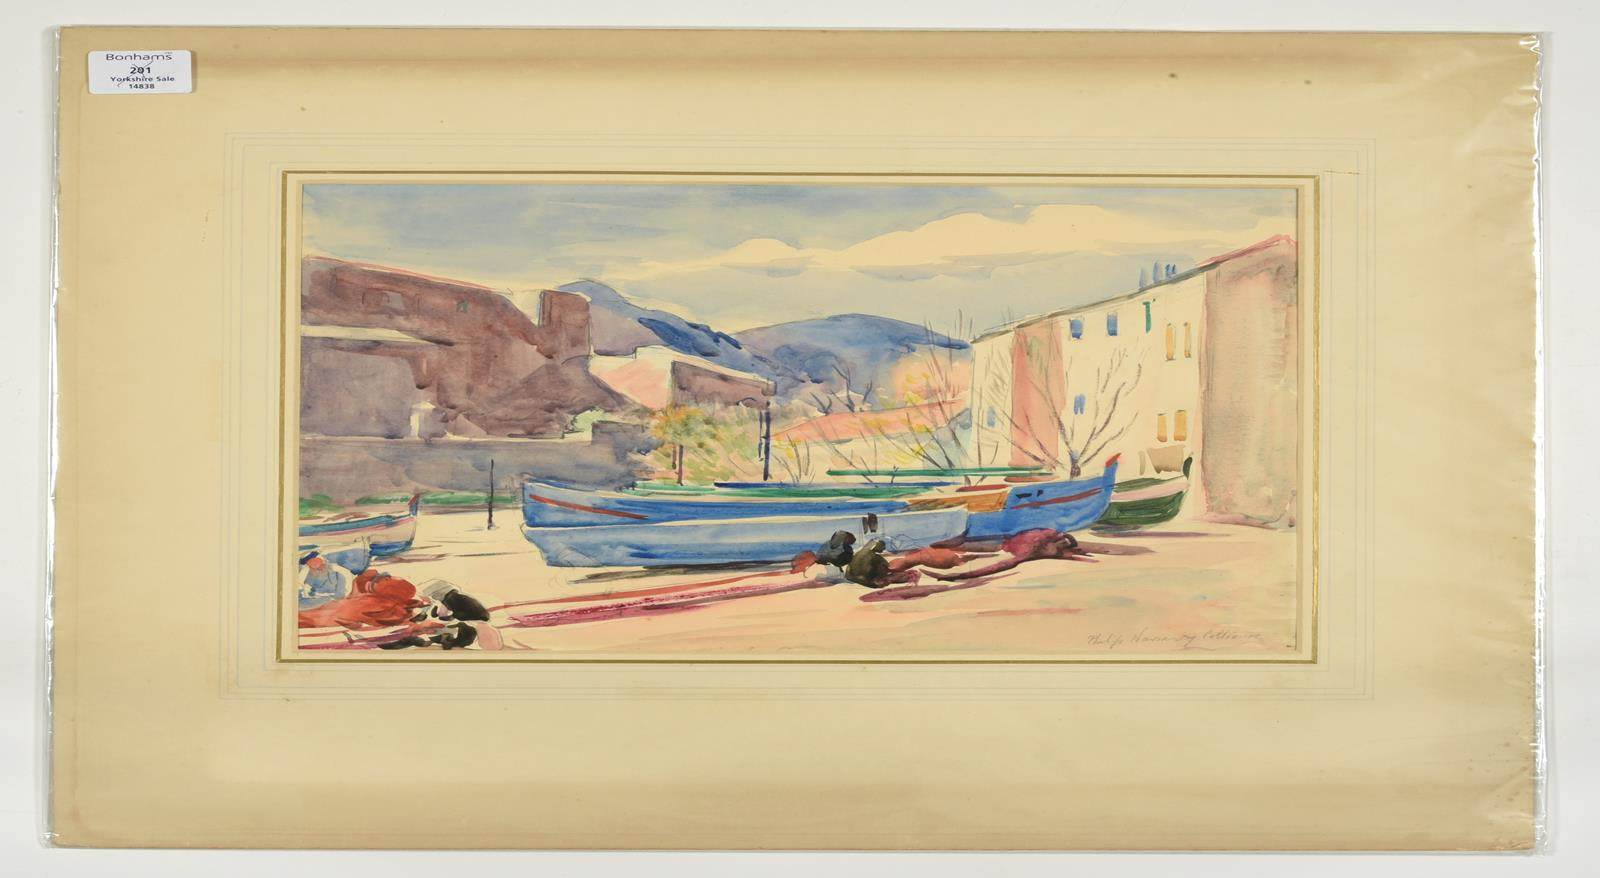 Philip Naviasky (1894-1983) ''Collioure'', South of France Signed and inscribed, pencil and - Image 2 of 2